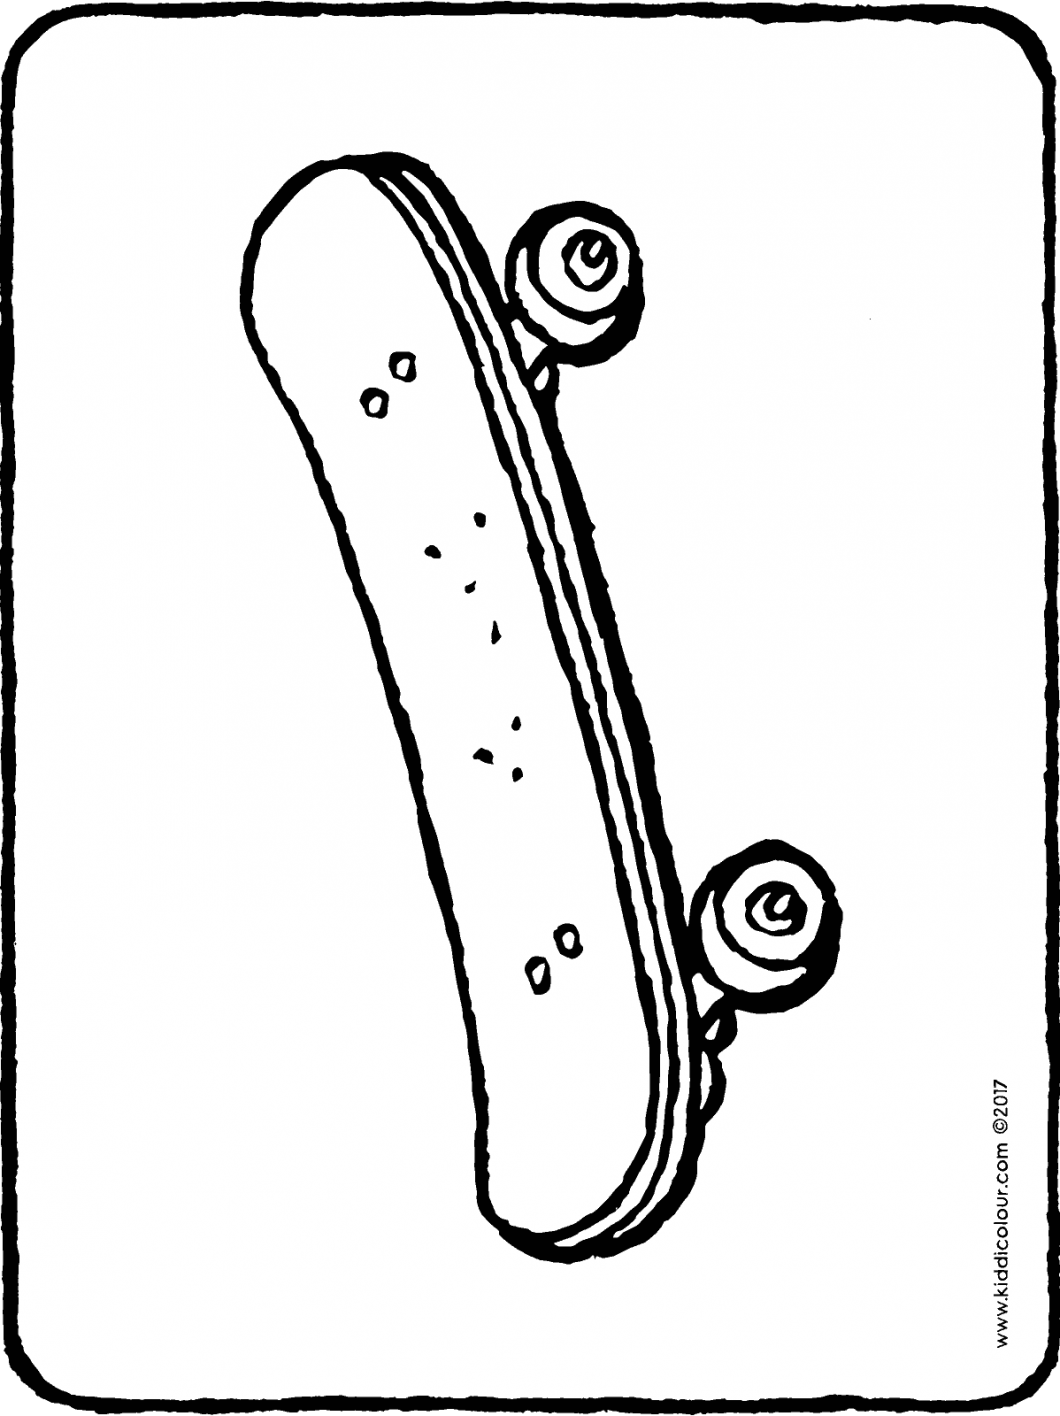 skateboard colouring page drawing picture 01H